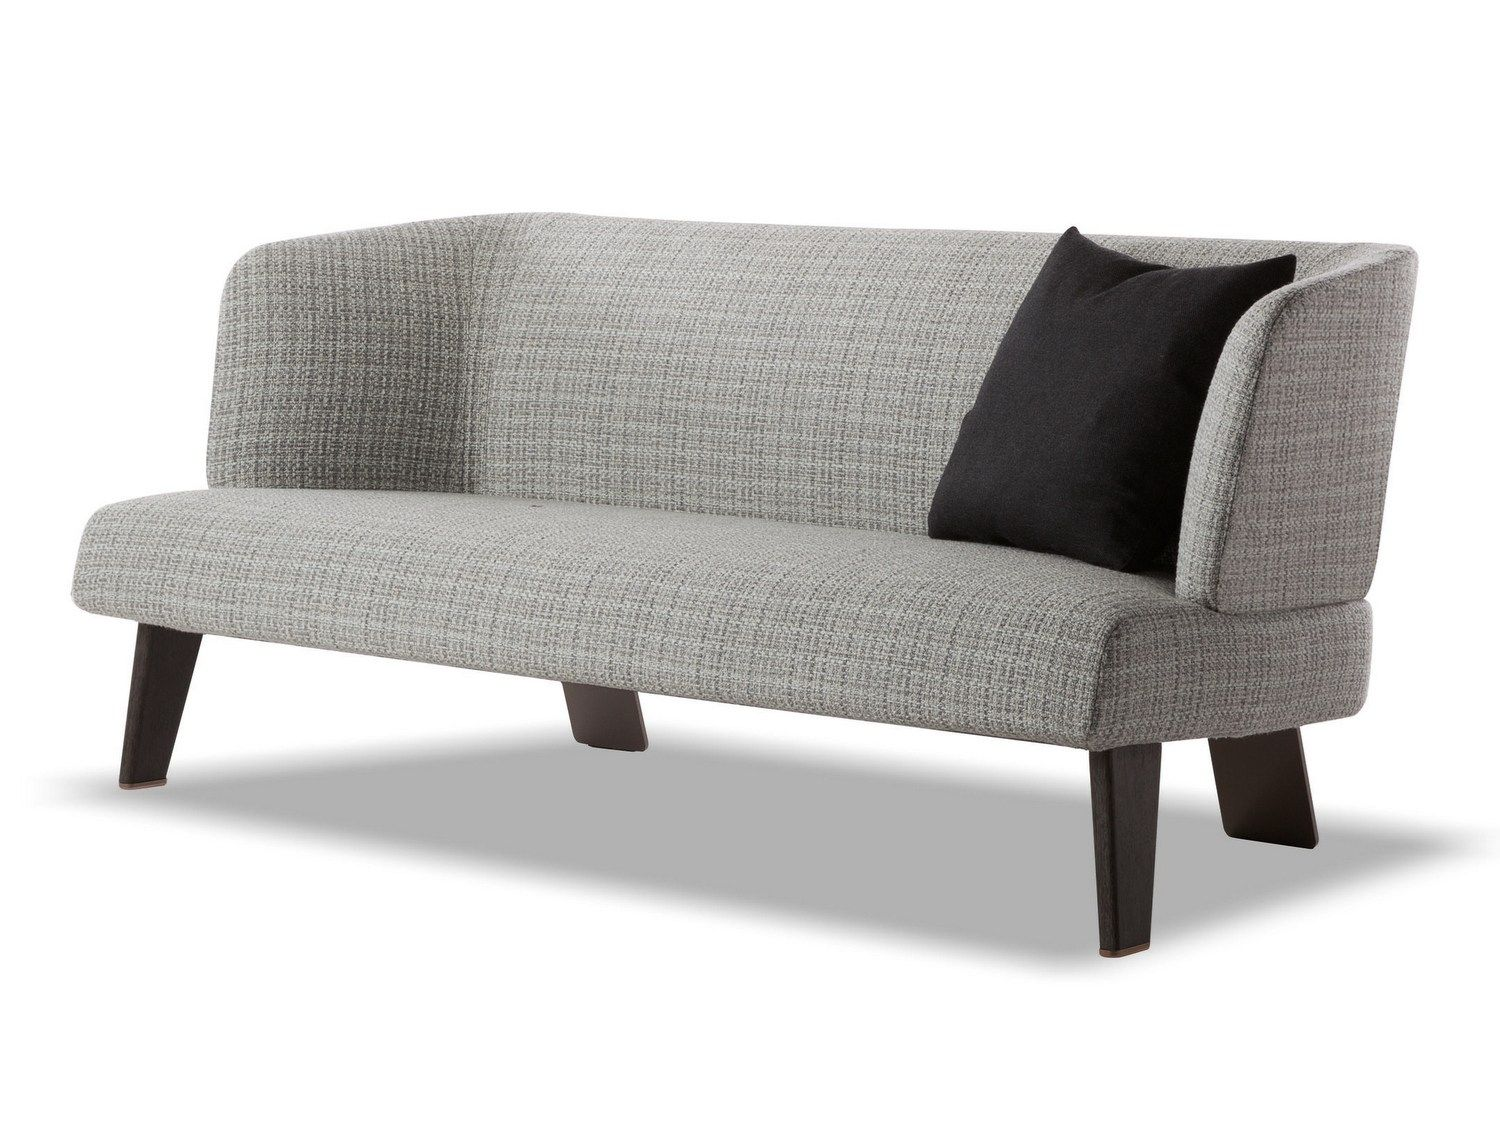 creed lounge by minotti rodolfo dordoni sofa. Black Bedroom Furniture Sets. Home Design Ideas